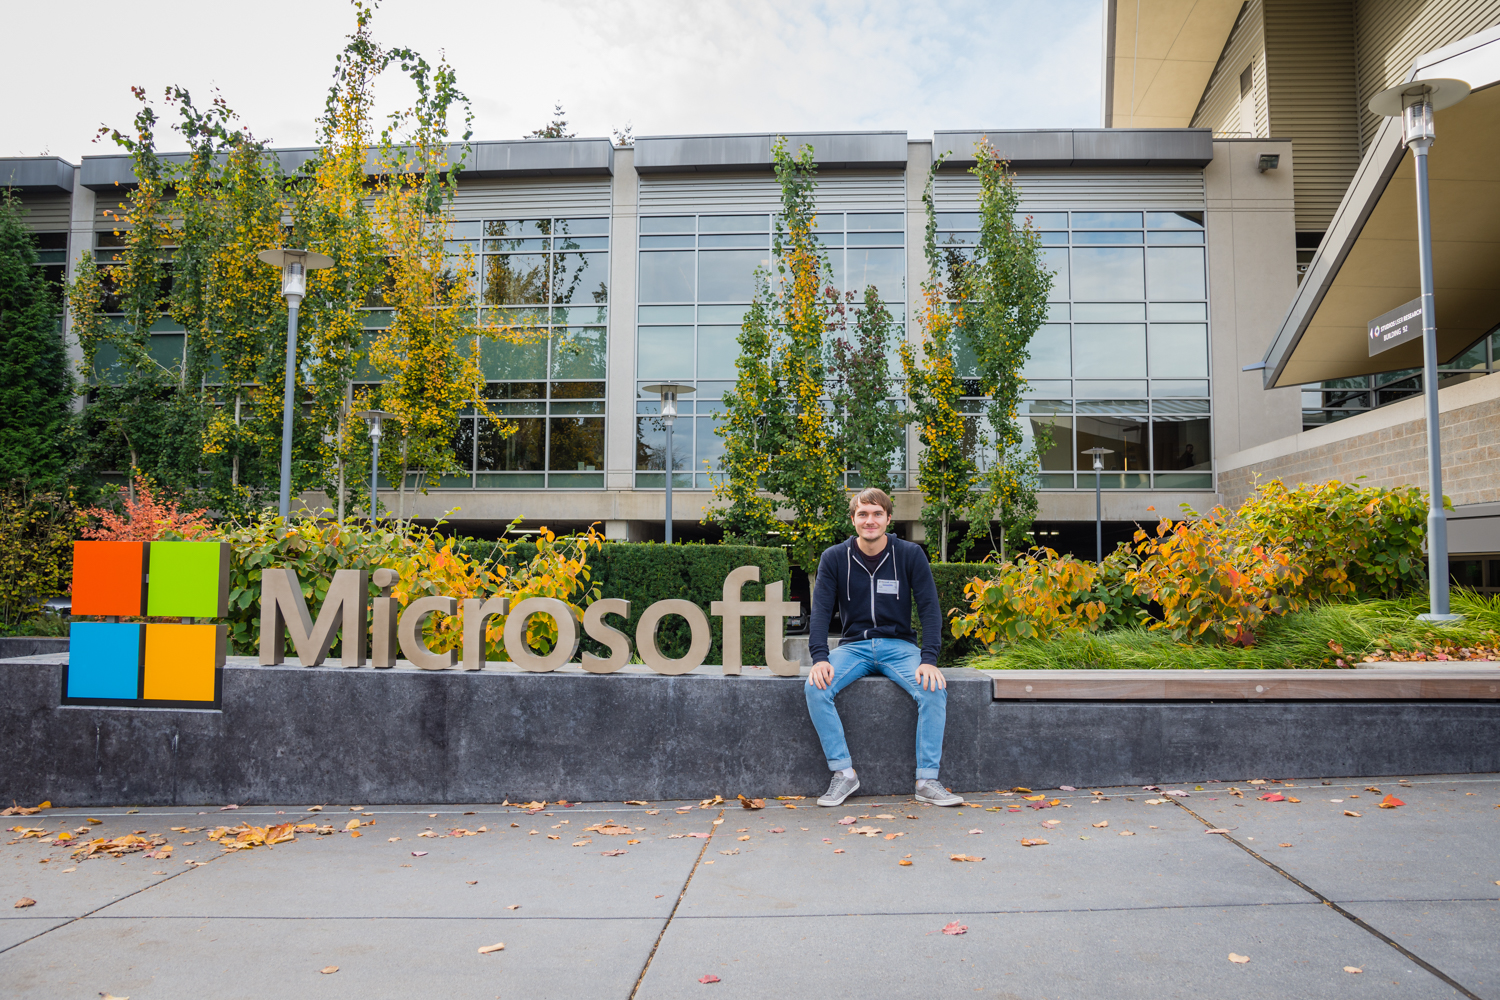 2016 10 25 Seattle Microsoft-40.jpg